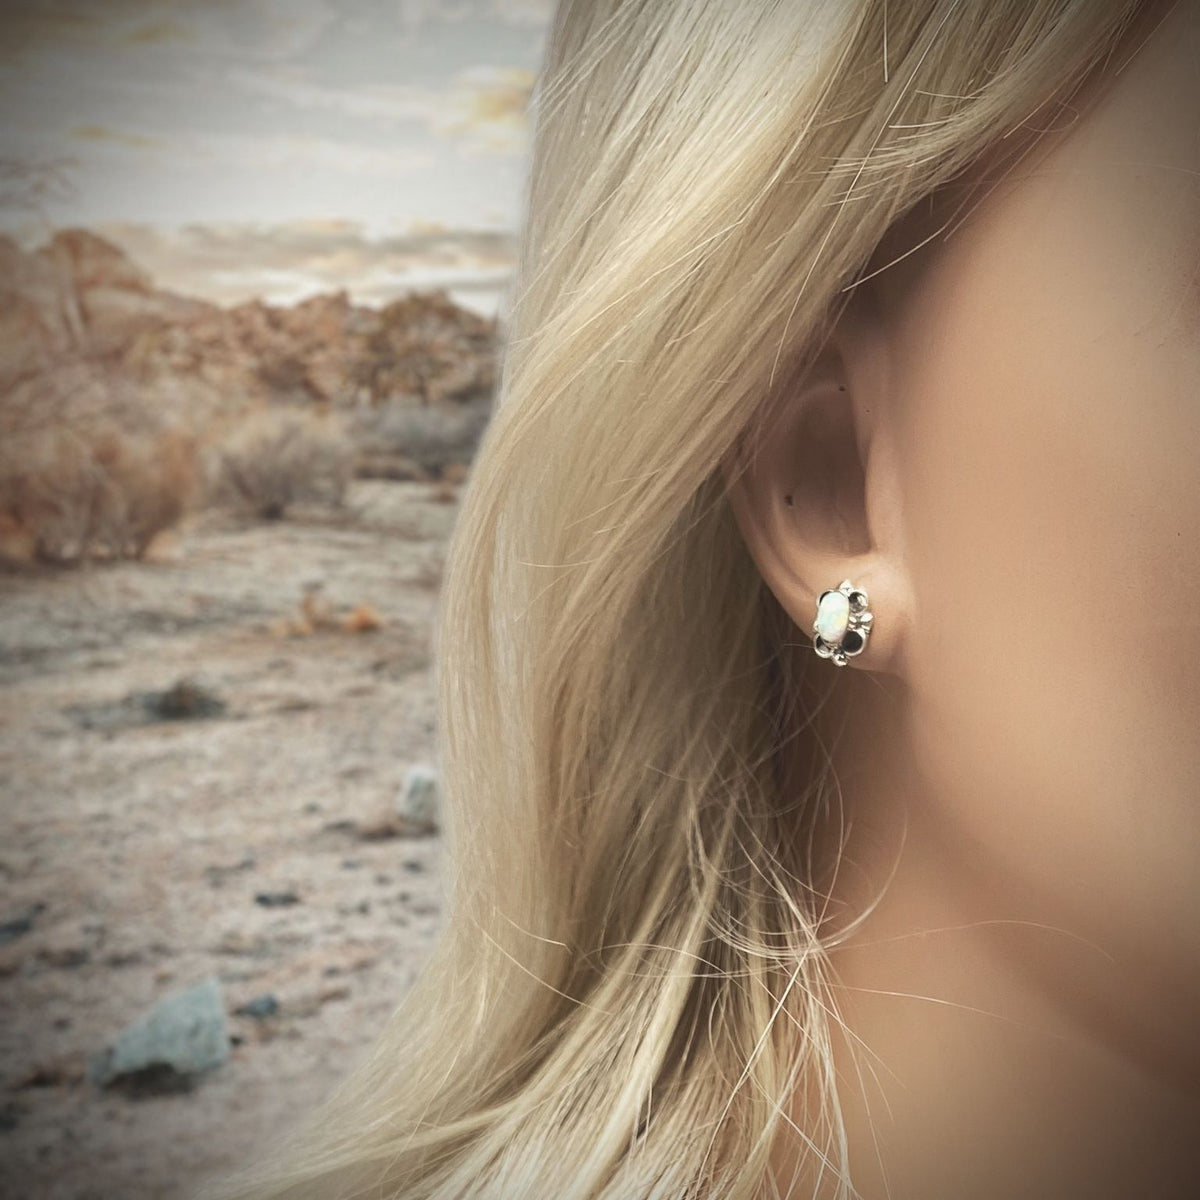 Desert Opal Stud Earrings in 925 Sterling Silver, Handmade, Nickle Free, White Synthetic Opal, Gift Boxed